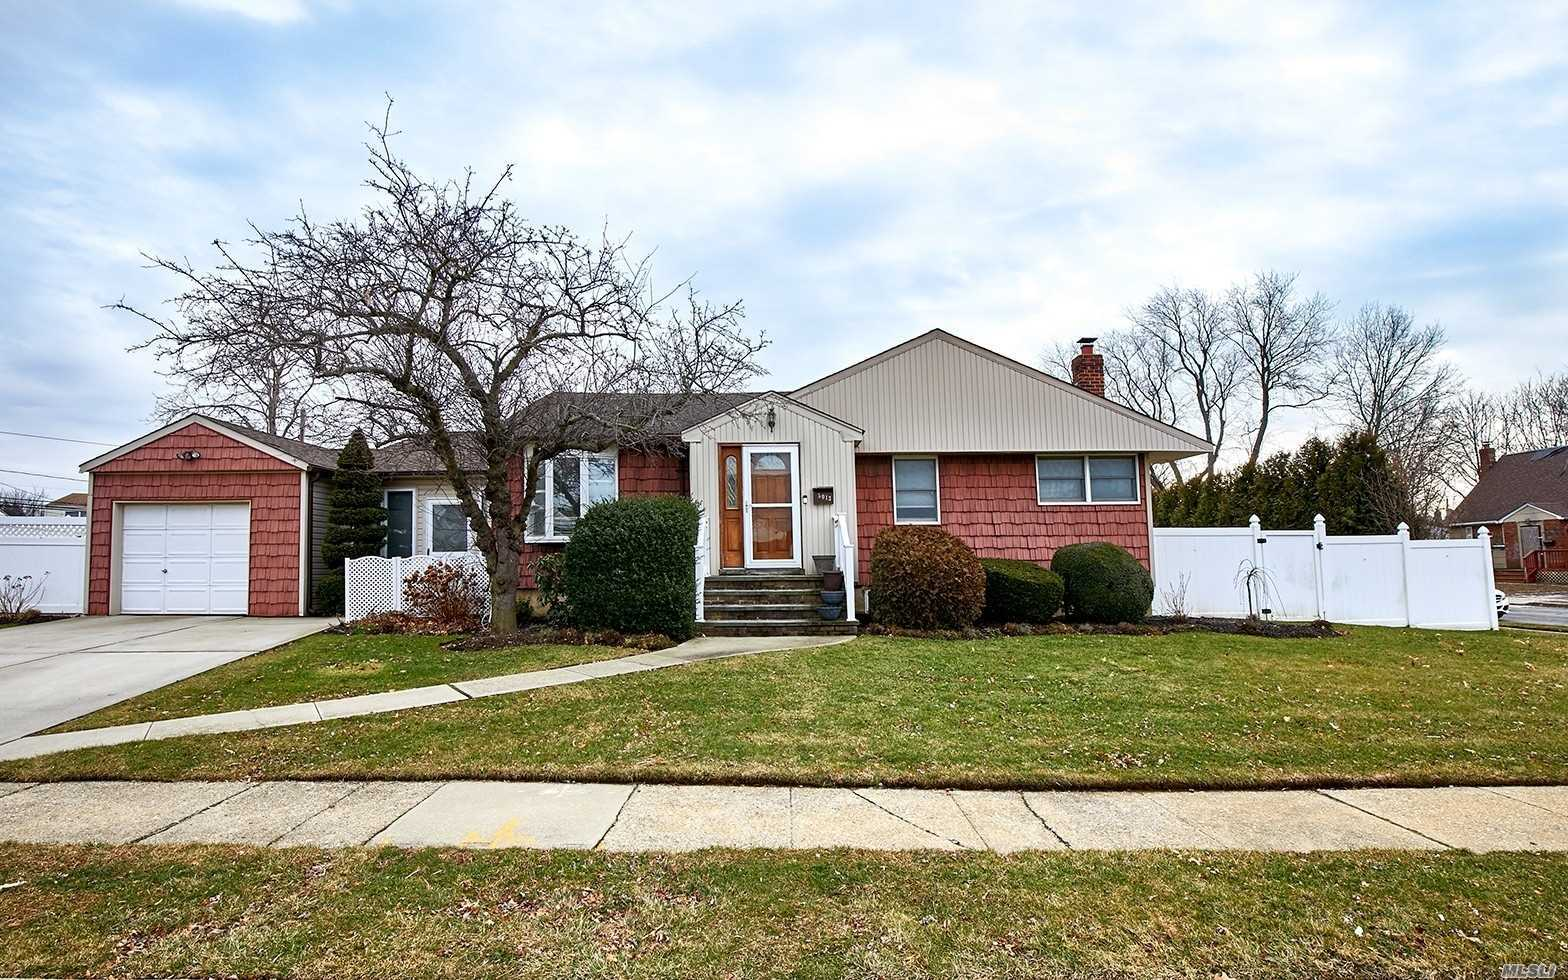 Stylish & Updated, This Expanded Ranch Boasts Oversized, Granite & Stainless Eat In Kitchen W/A Highly Functional Pantry, Liv Rm, 3 Bdrms, Dining Rm & 2 Sep Mudrms. Also Features A Finished Bsmt W/A 2nd Bath That Is Permitted. Office, Family Rom, Playrm & Laundry Rm. Oversized Yard Is An Entertainers Paradise W/A Heated Inground Pool, Paver Patio, Deck & Privacy Landscaping. Additional Amenities: Hardwood Floors, In Ground Sprinklers, New Cac Unit, Att Garage W/Entrance To House & Pvt Driveway